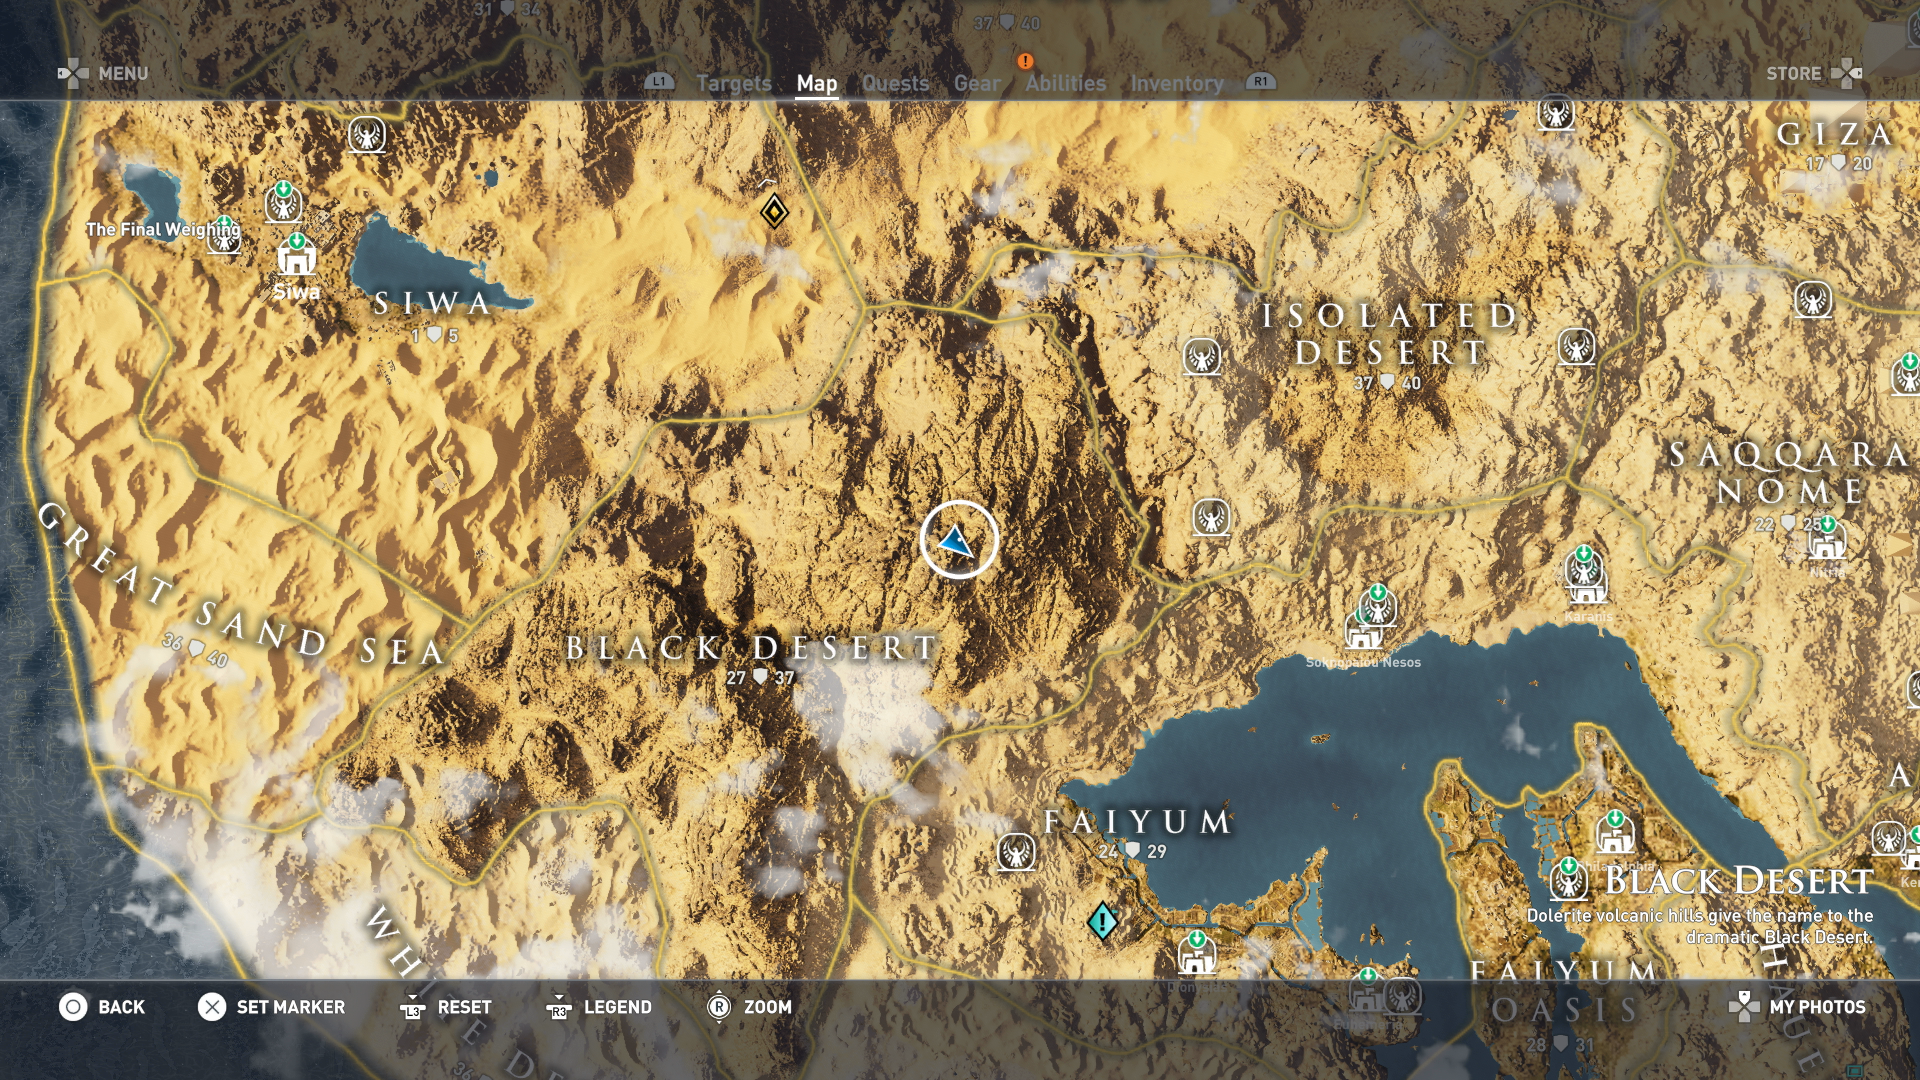 Assassin S Creed Origins Hermit Hideout Locations How To Find Every Hermit Site On The Map Usgamer